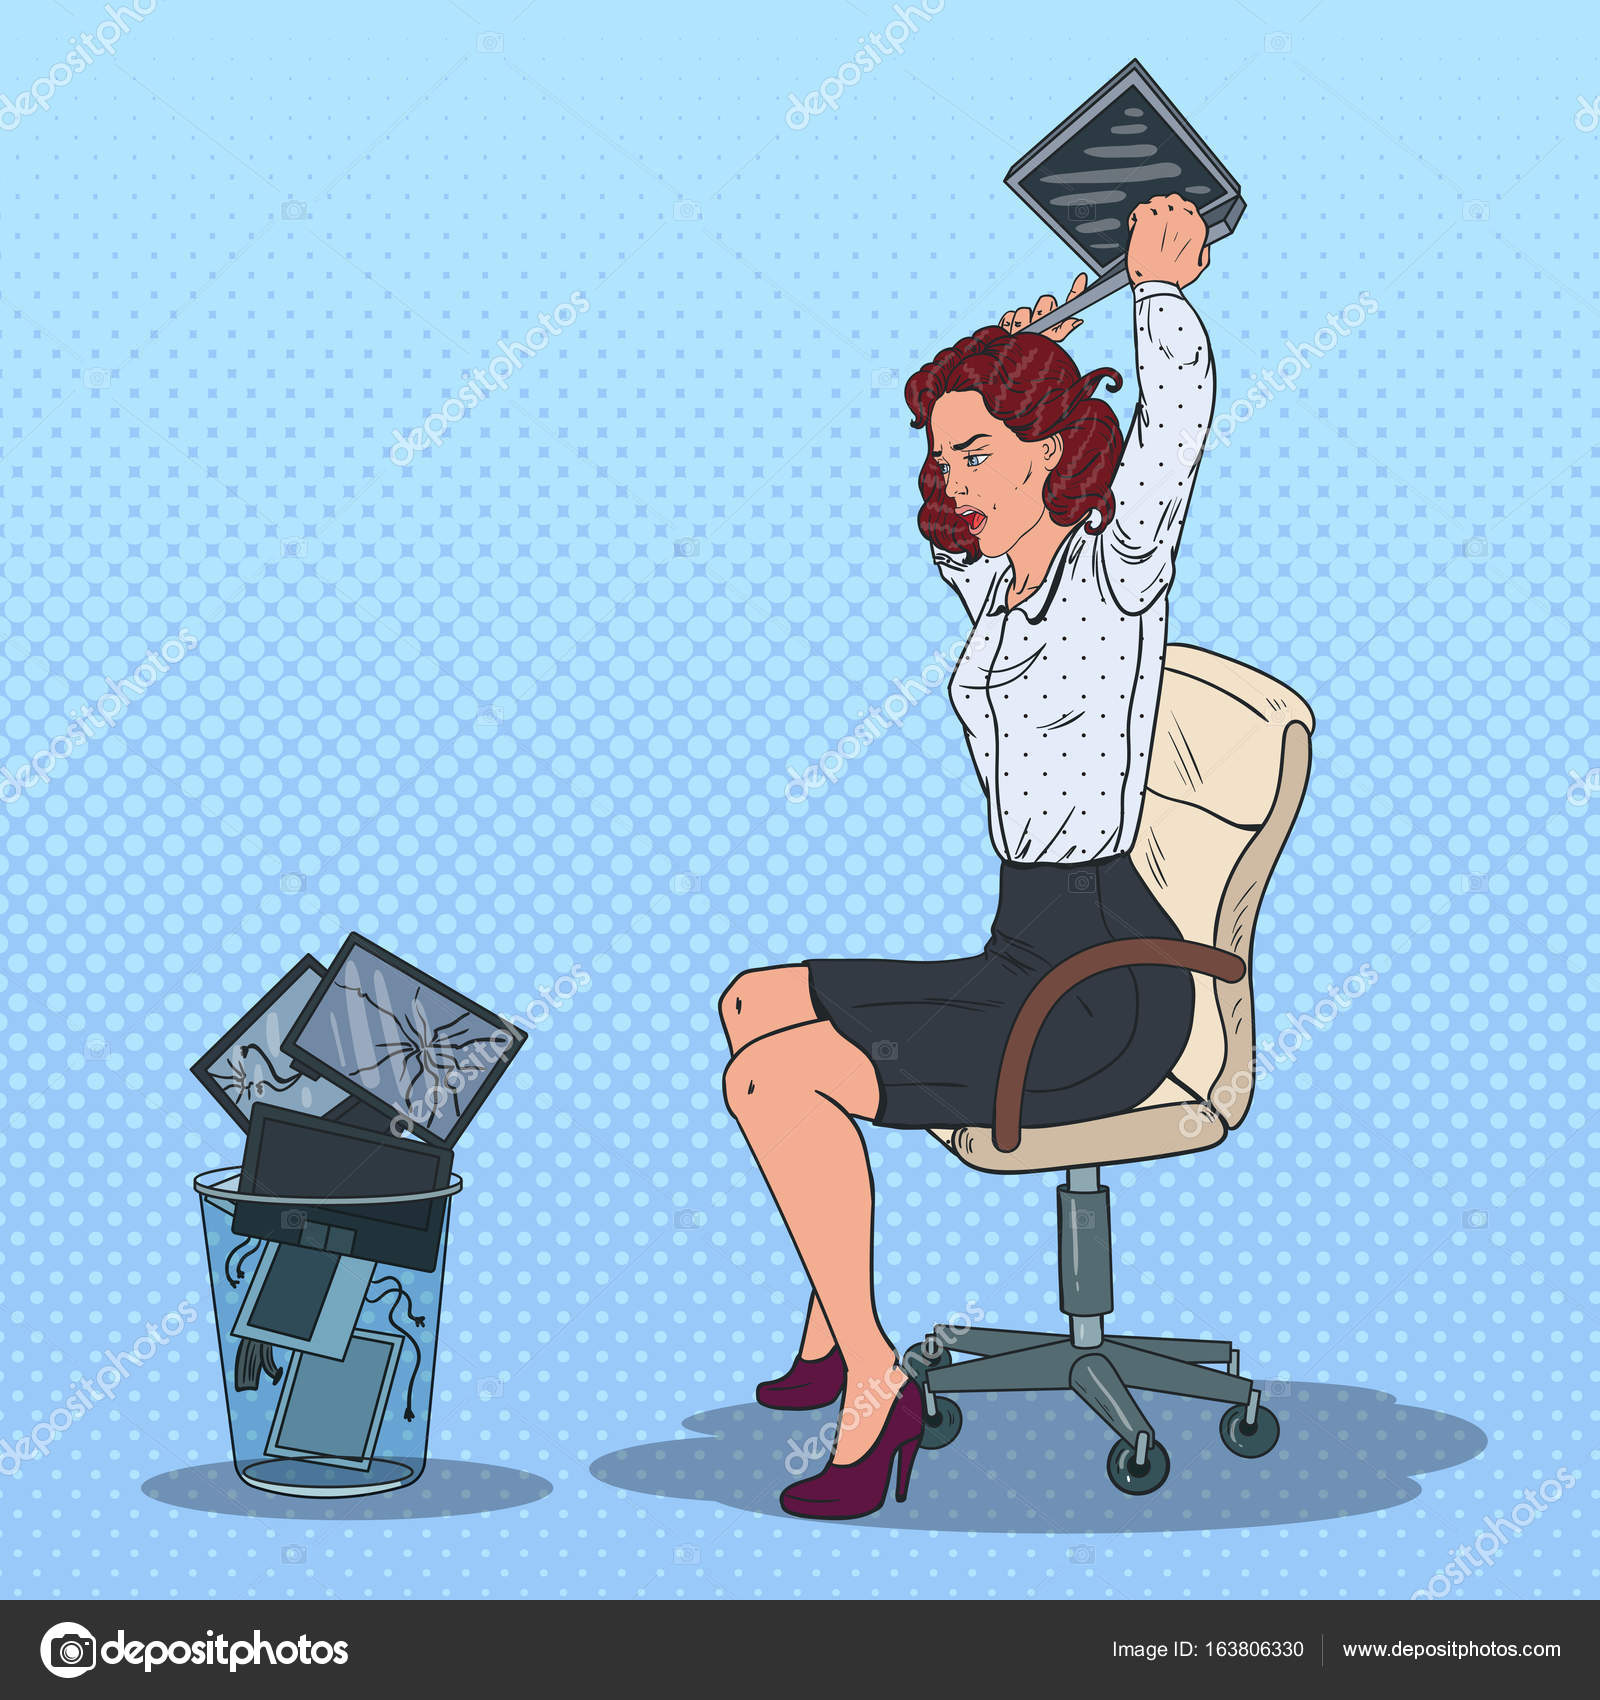 Professional Screeding Pop And Painting Designs Works: Pop Art Stressed Business Woman Throwing Laptop To The